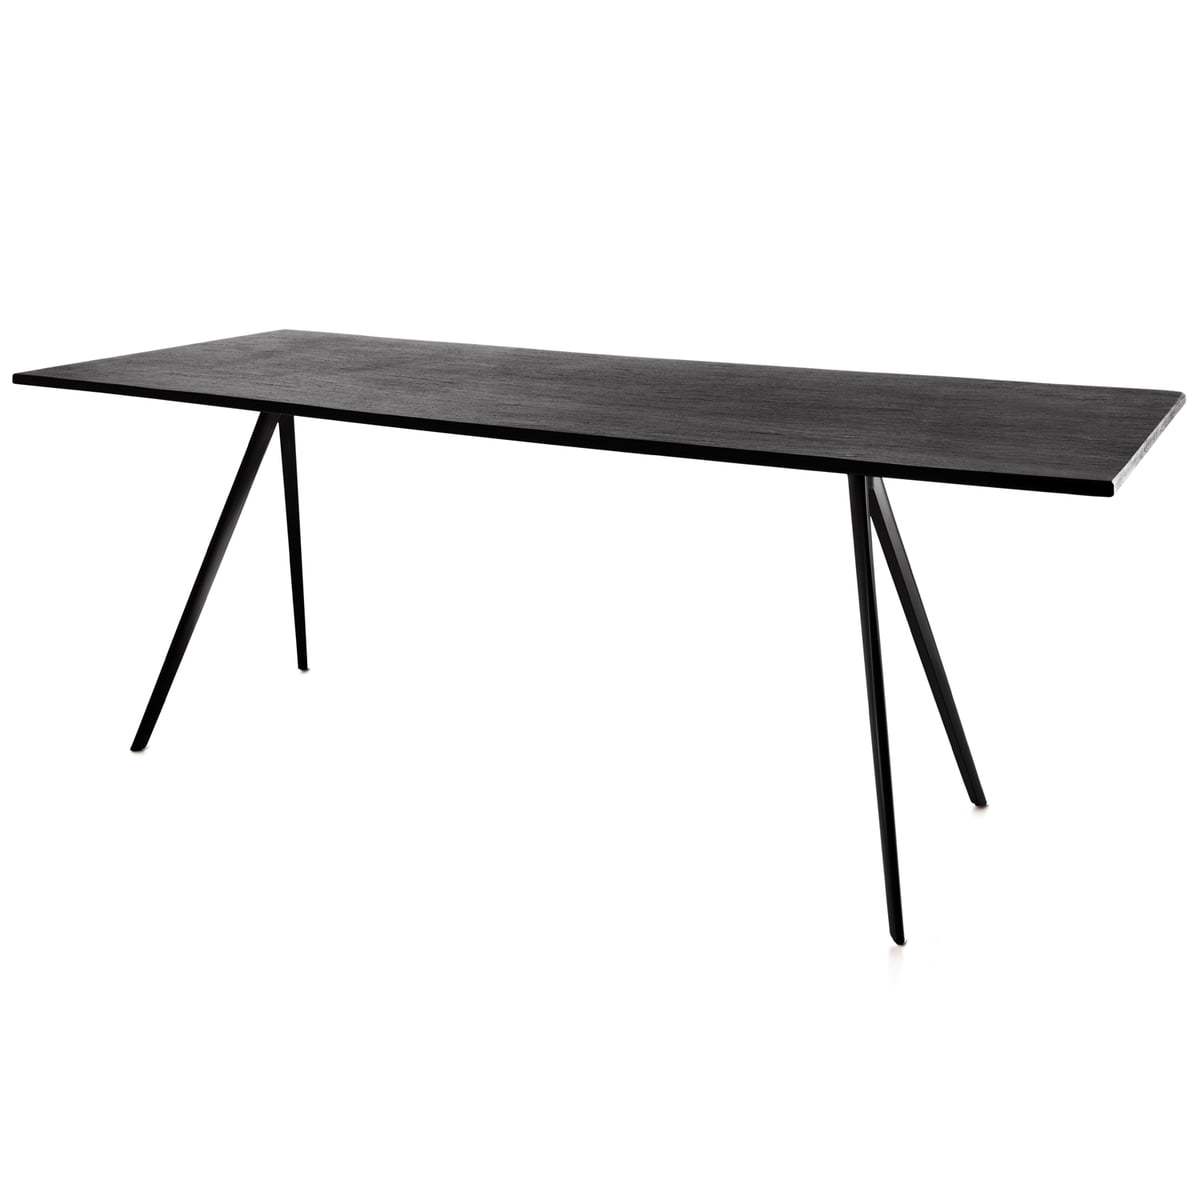 Baguette table magis shop for Tisch schwarz